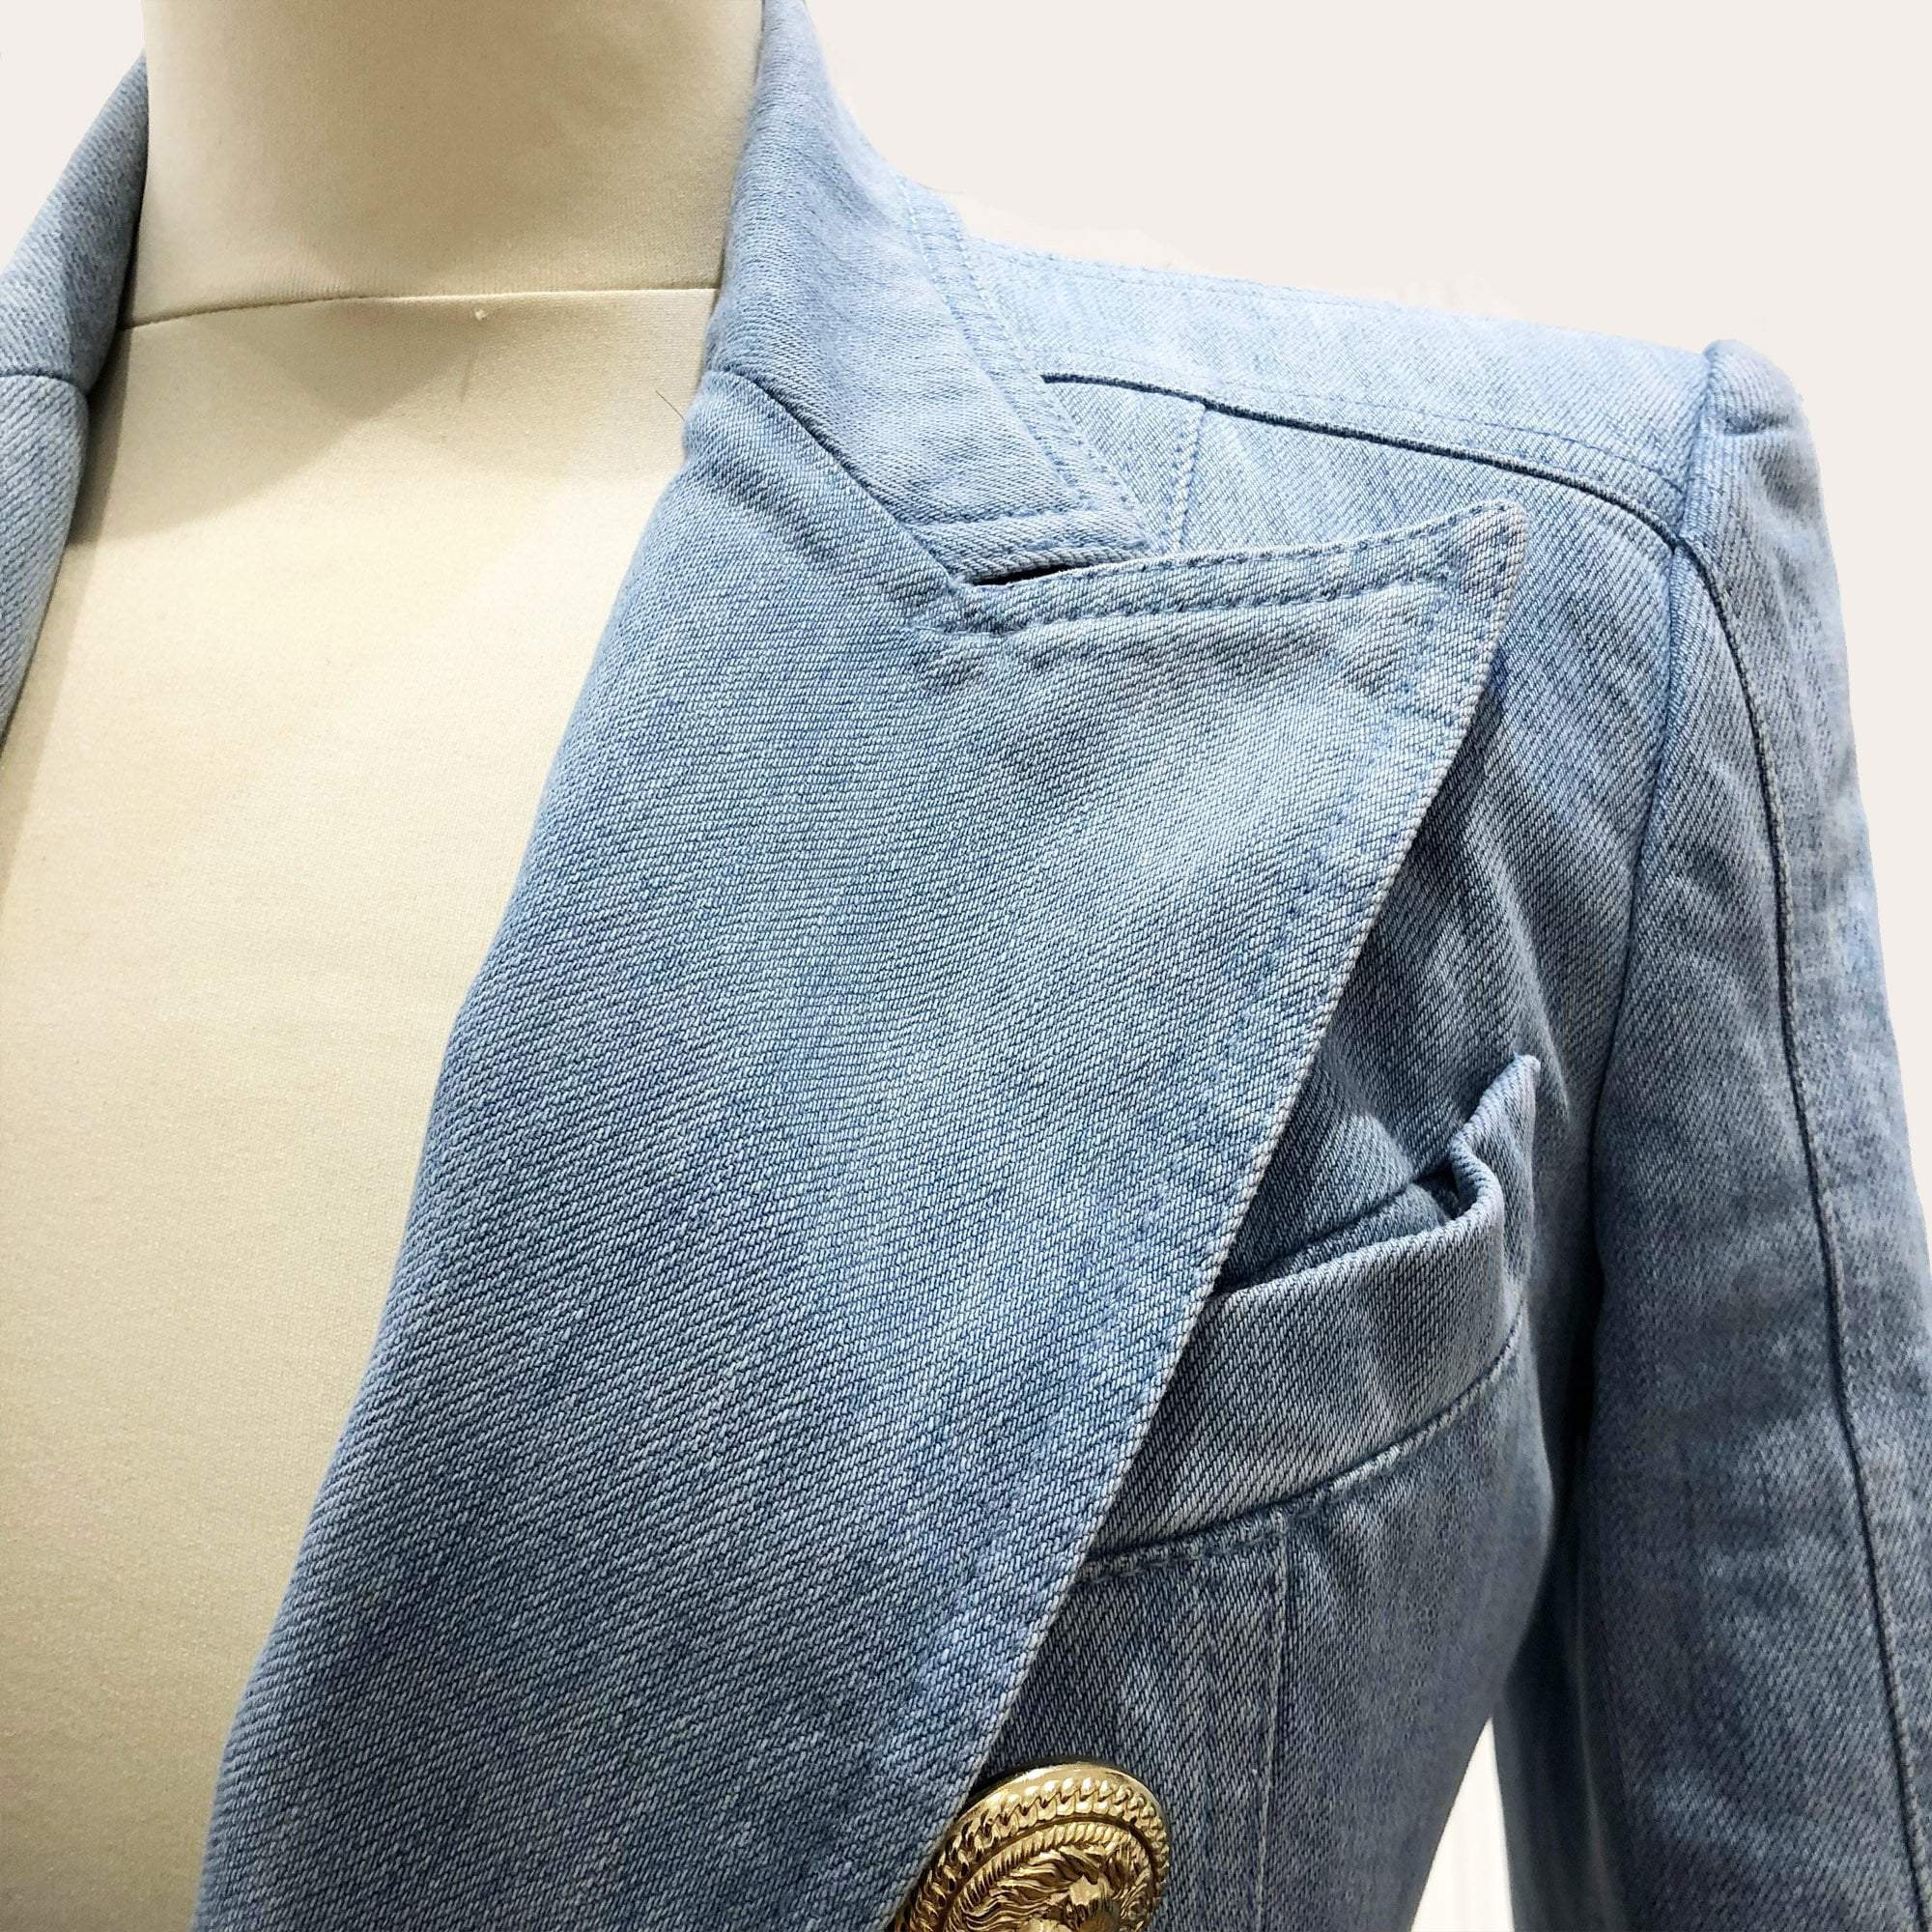 Balmain Light Blue Denim Jacket w Gold Buttons